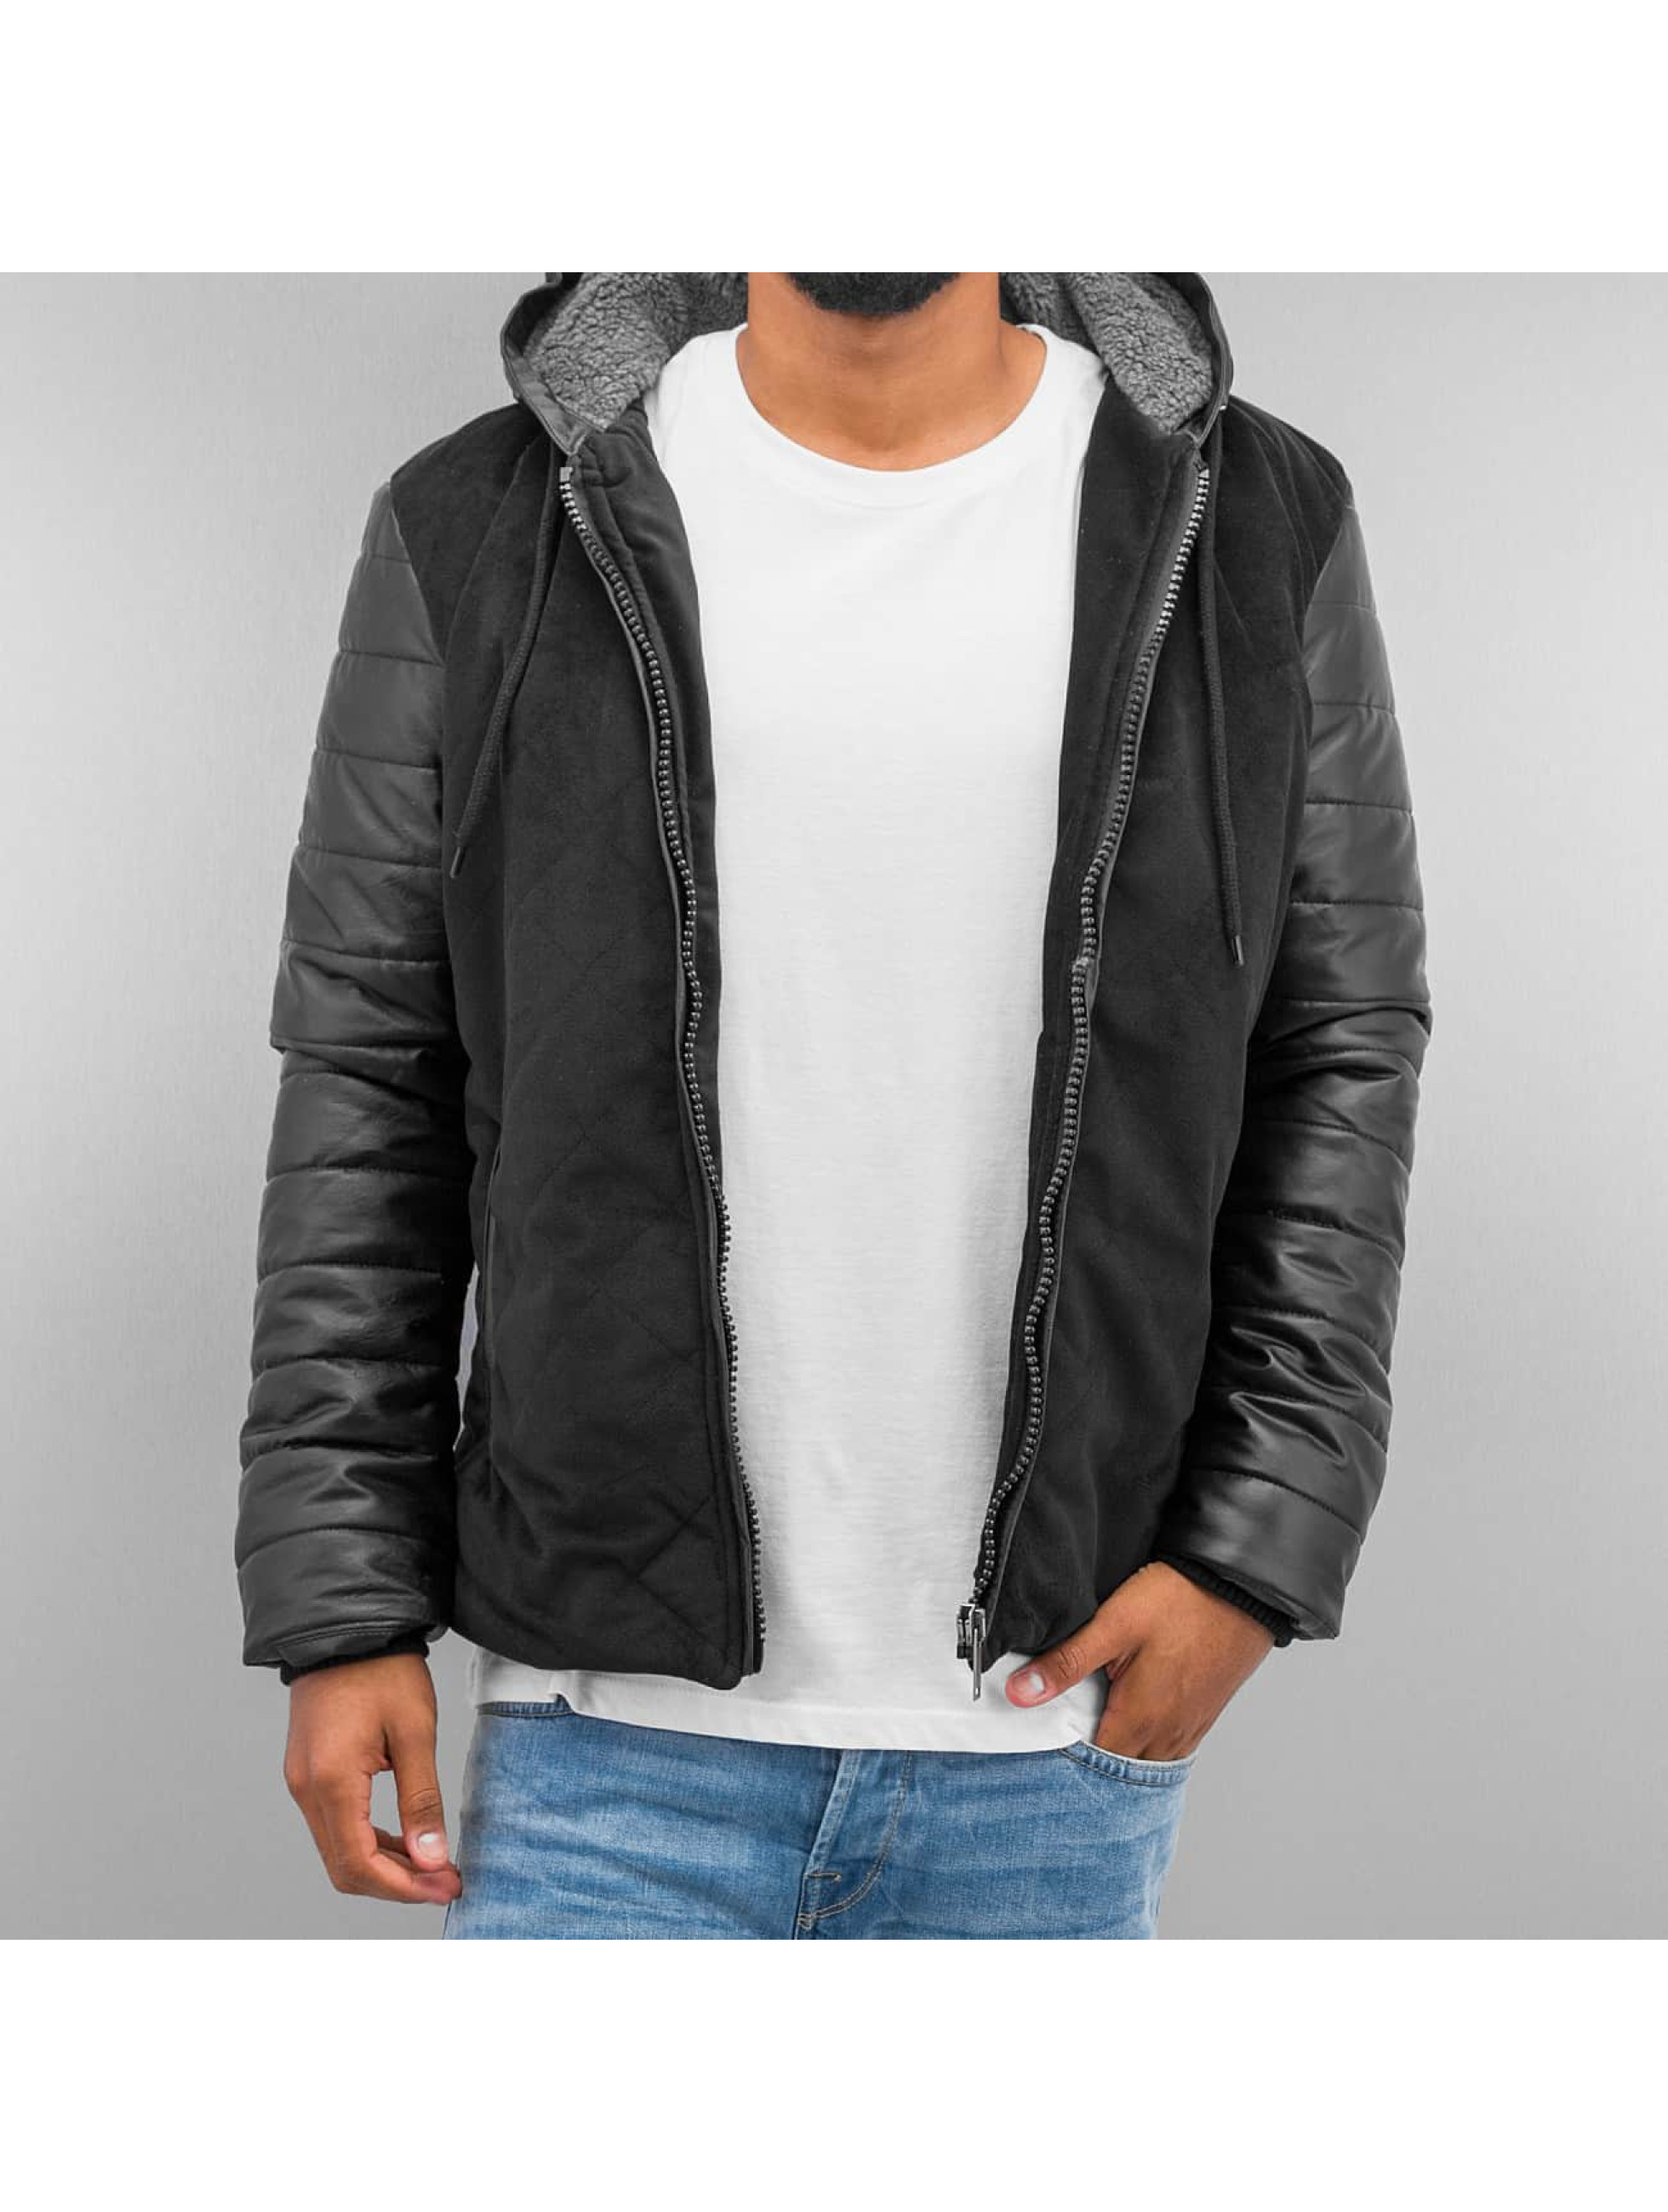 Just Rhyse / Lightweight Jacket Minsko in black M